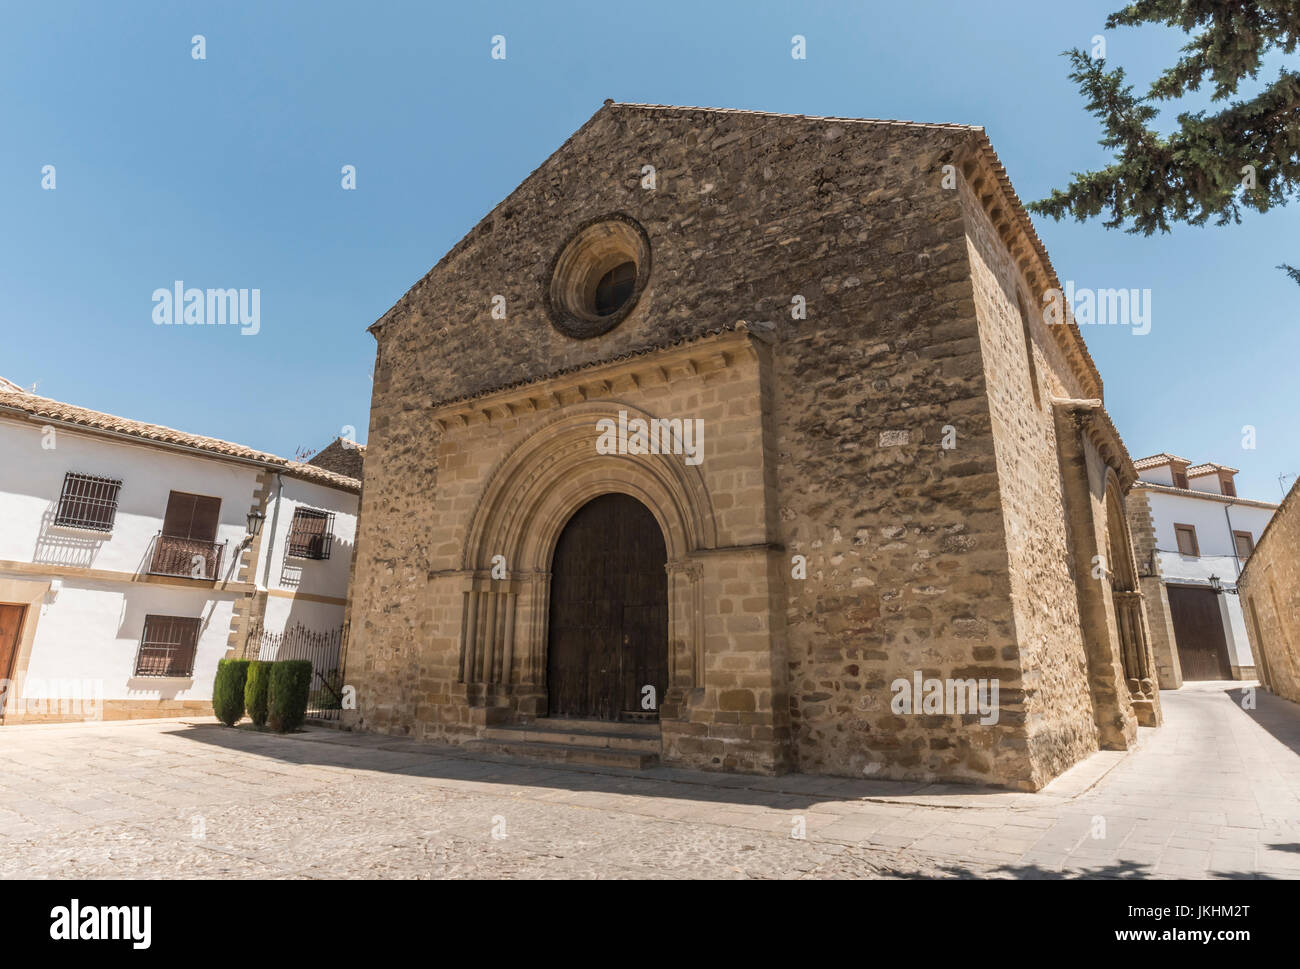 Church romanic of the Santa Cruz, built in the XIII century, declared Patrimony of the Humanity by Unesco, Baeza, - Stock Image